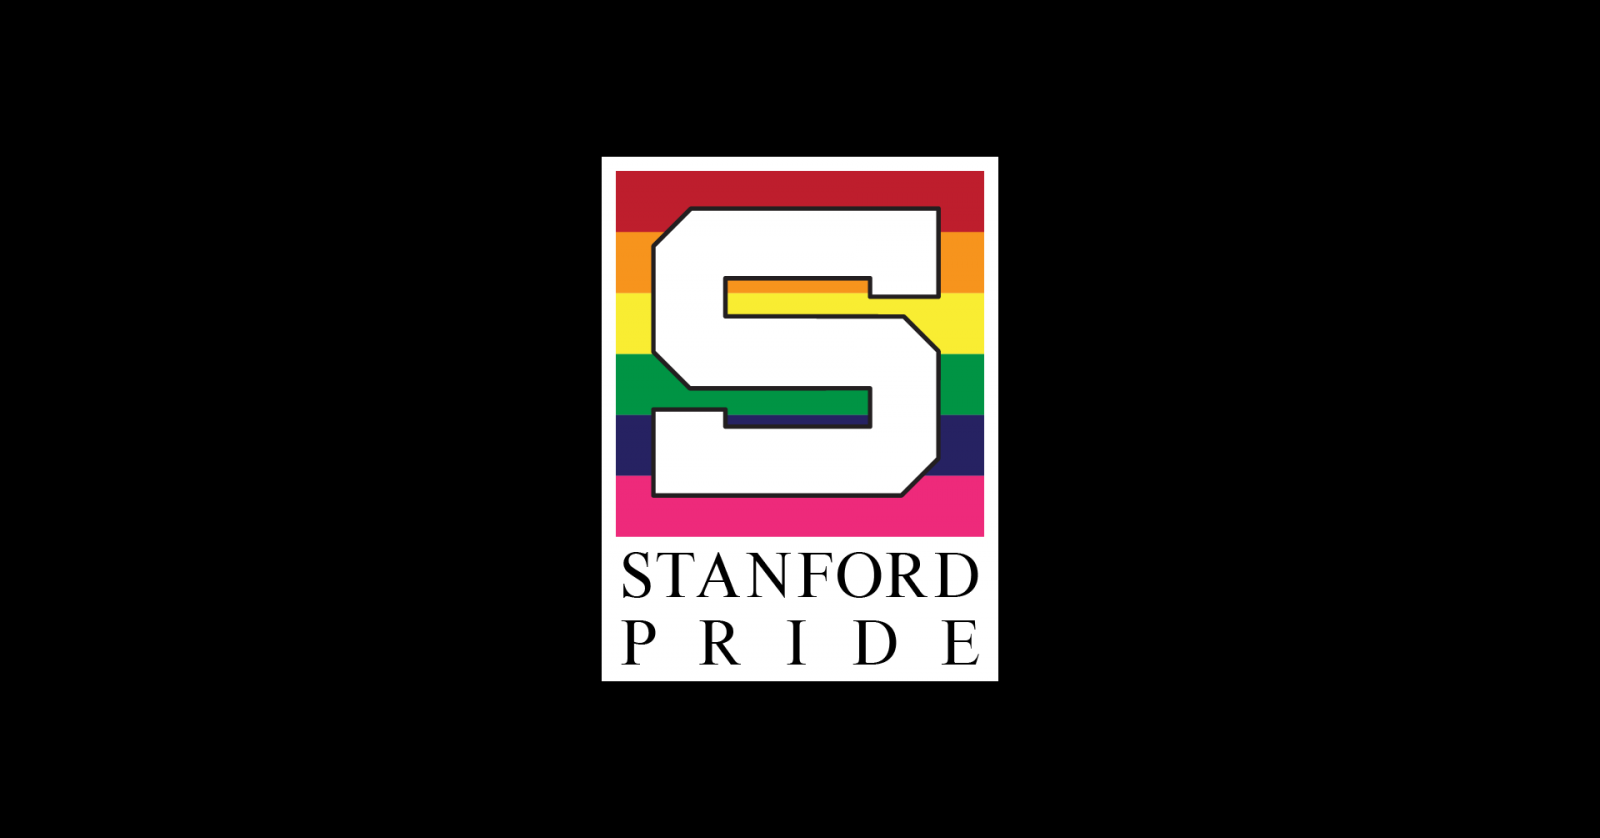 Stanford Pride's rainbow logo against a black background